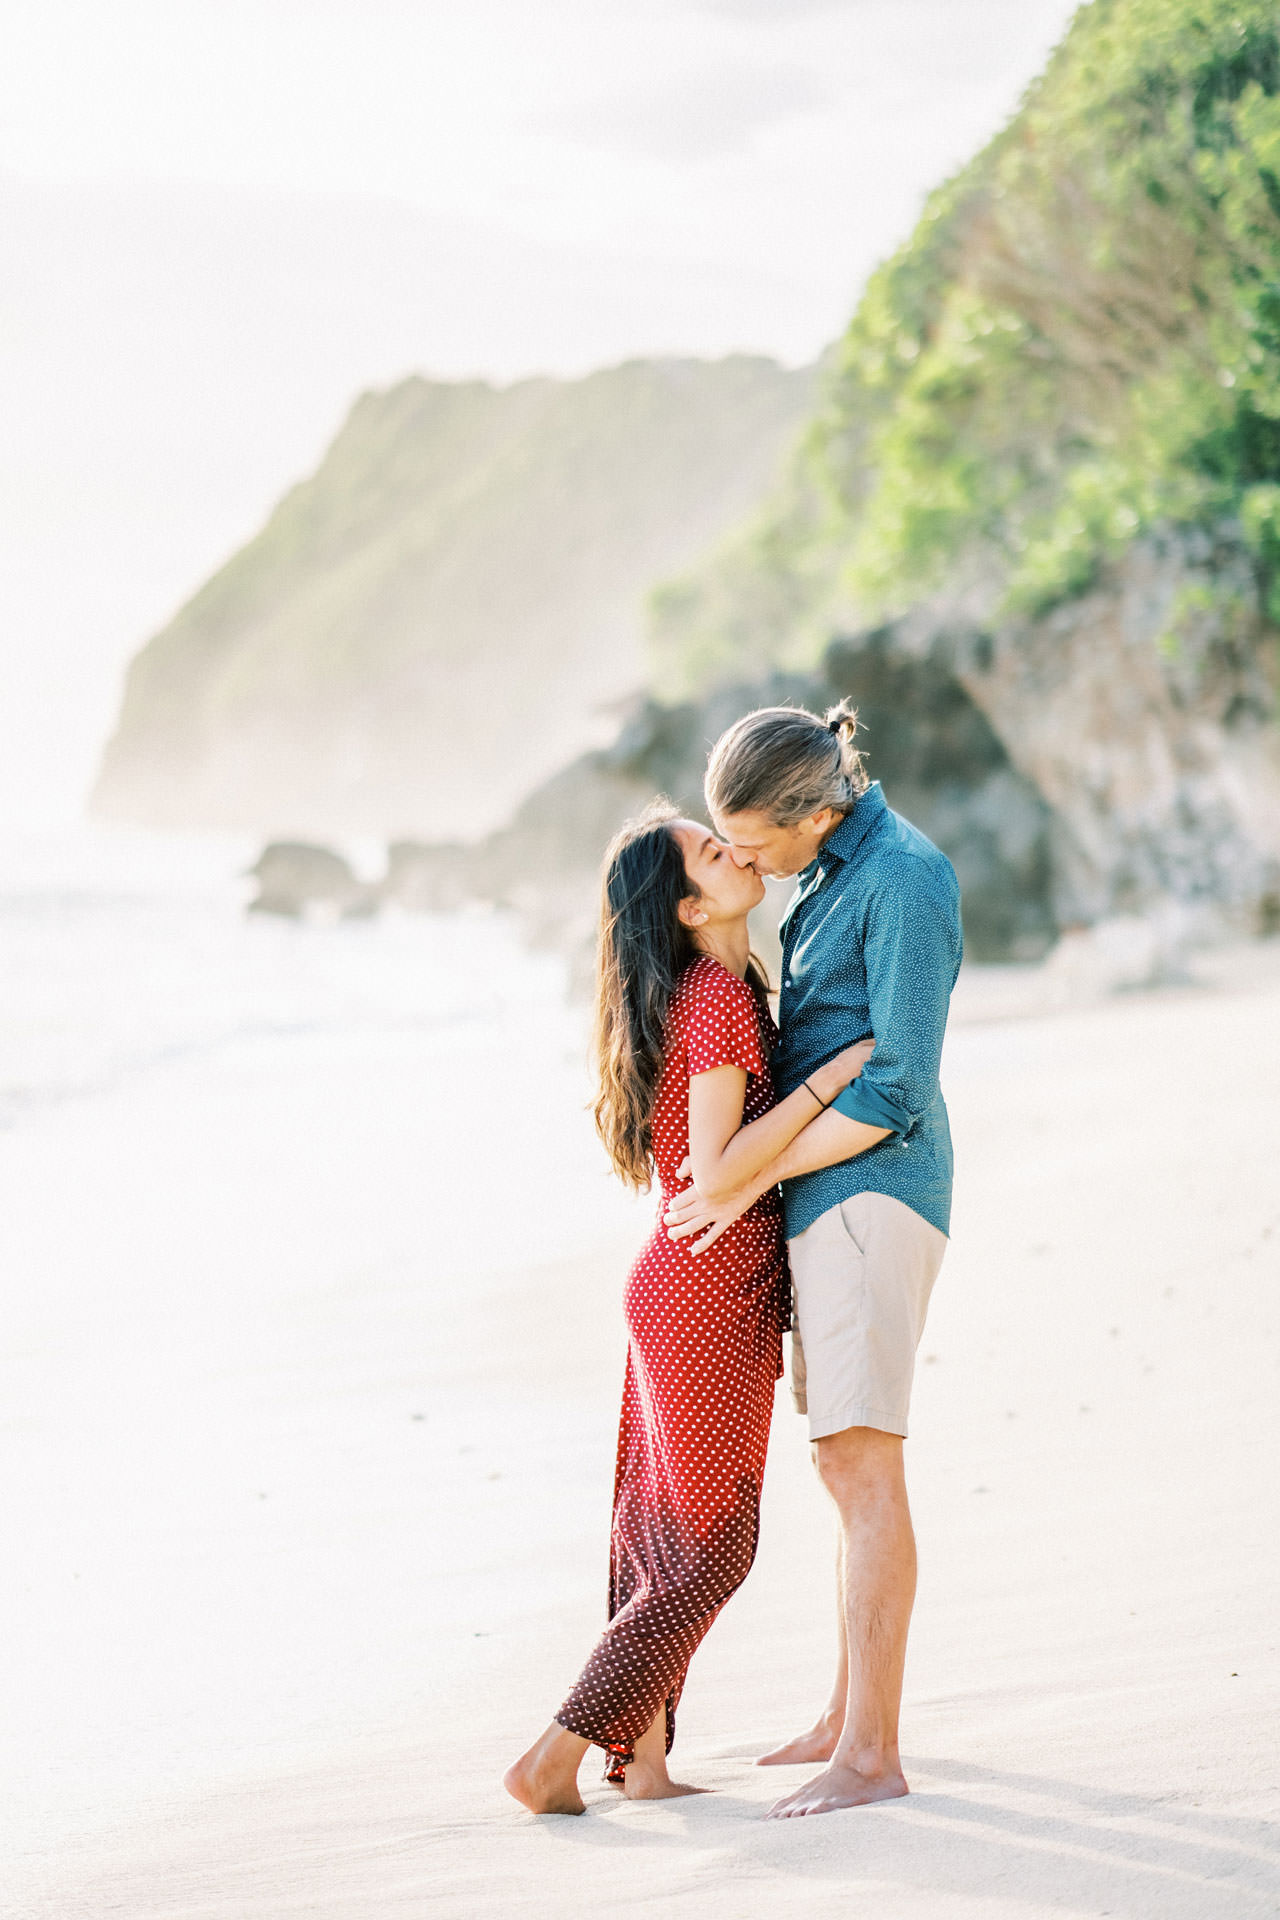 Bali's Beach Marriage Proposal with a Proposal Video! 27